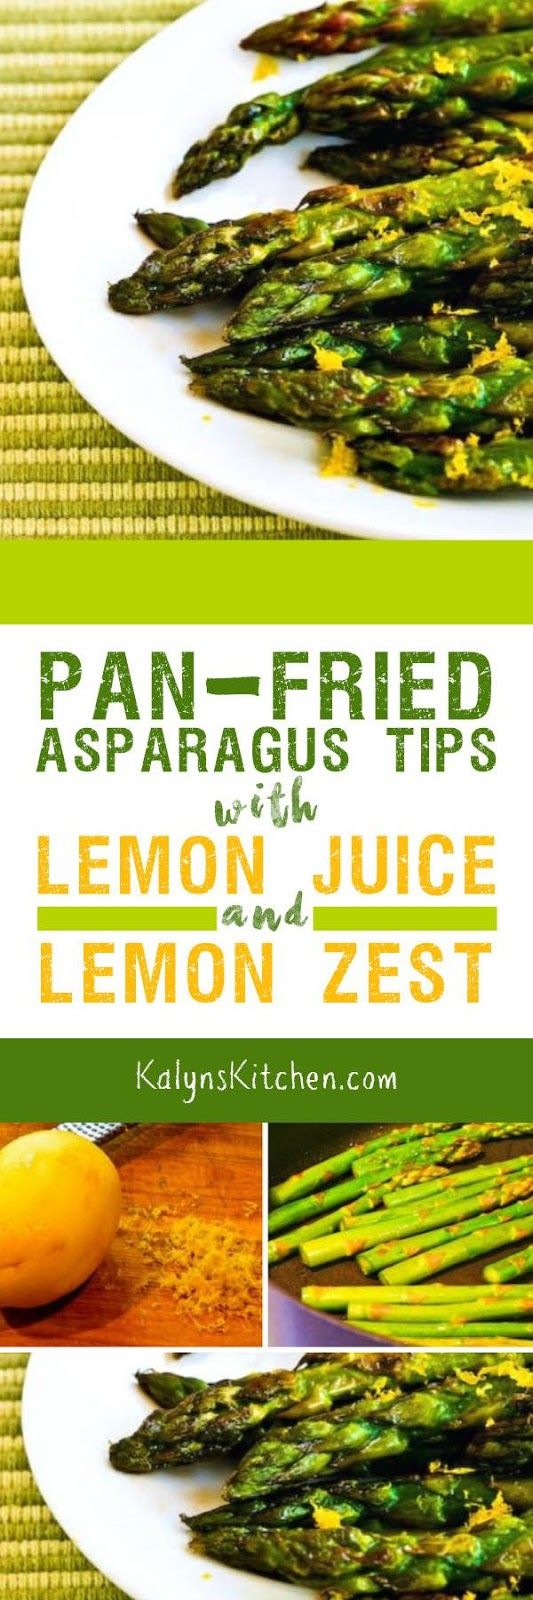 Pan-Fried Asparagus Tips with Lemon Juice and Lemon Zest have only three ingredients, and this quick and easy asparagus recipe is low-carb, Keto, low-glycemic, gluten-free, South Beach Diet friendly, Paleo, and Whole 30. And this cooks in minutes! [found on KalynsKitchen.com]